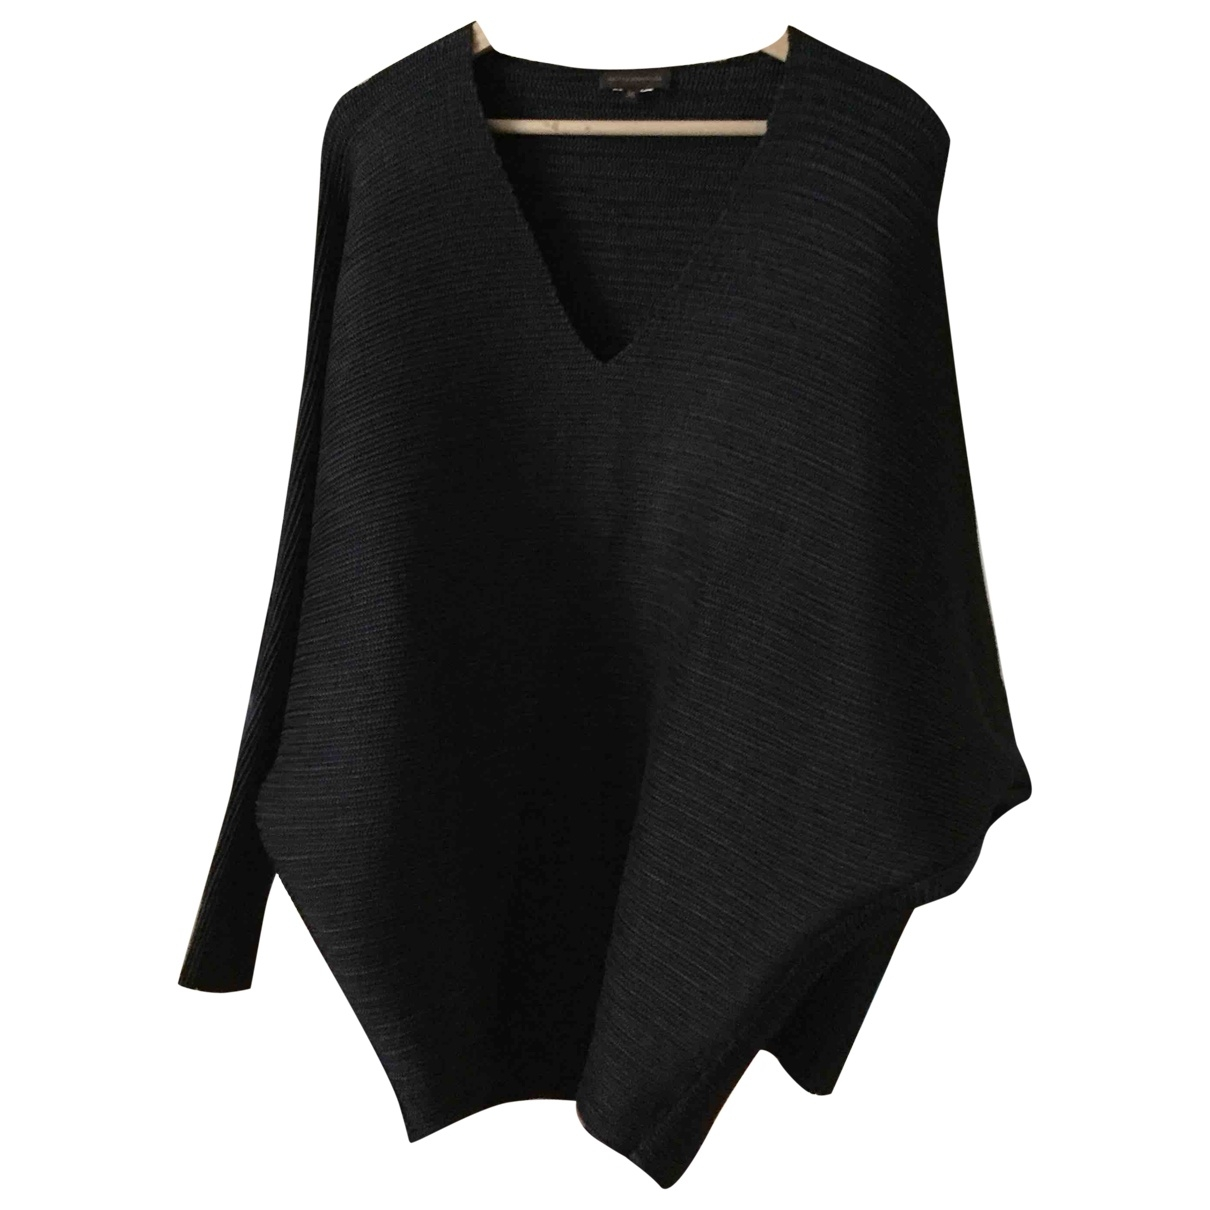 Adolfo Dominguez \N Black Knitwear for Women 38 FR